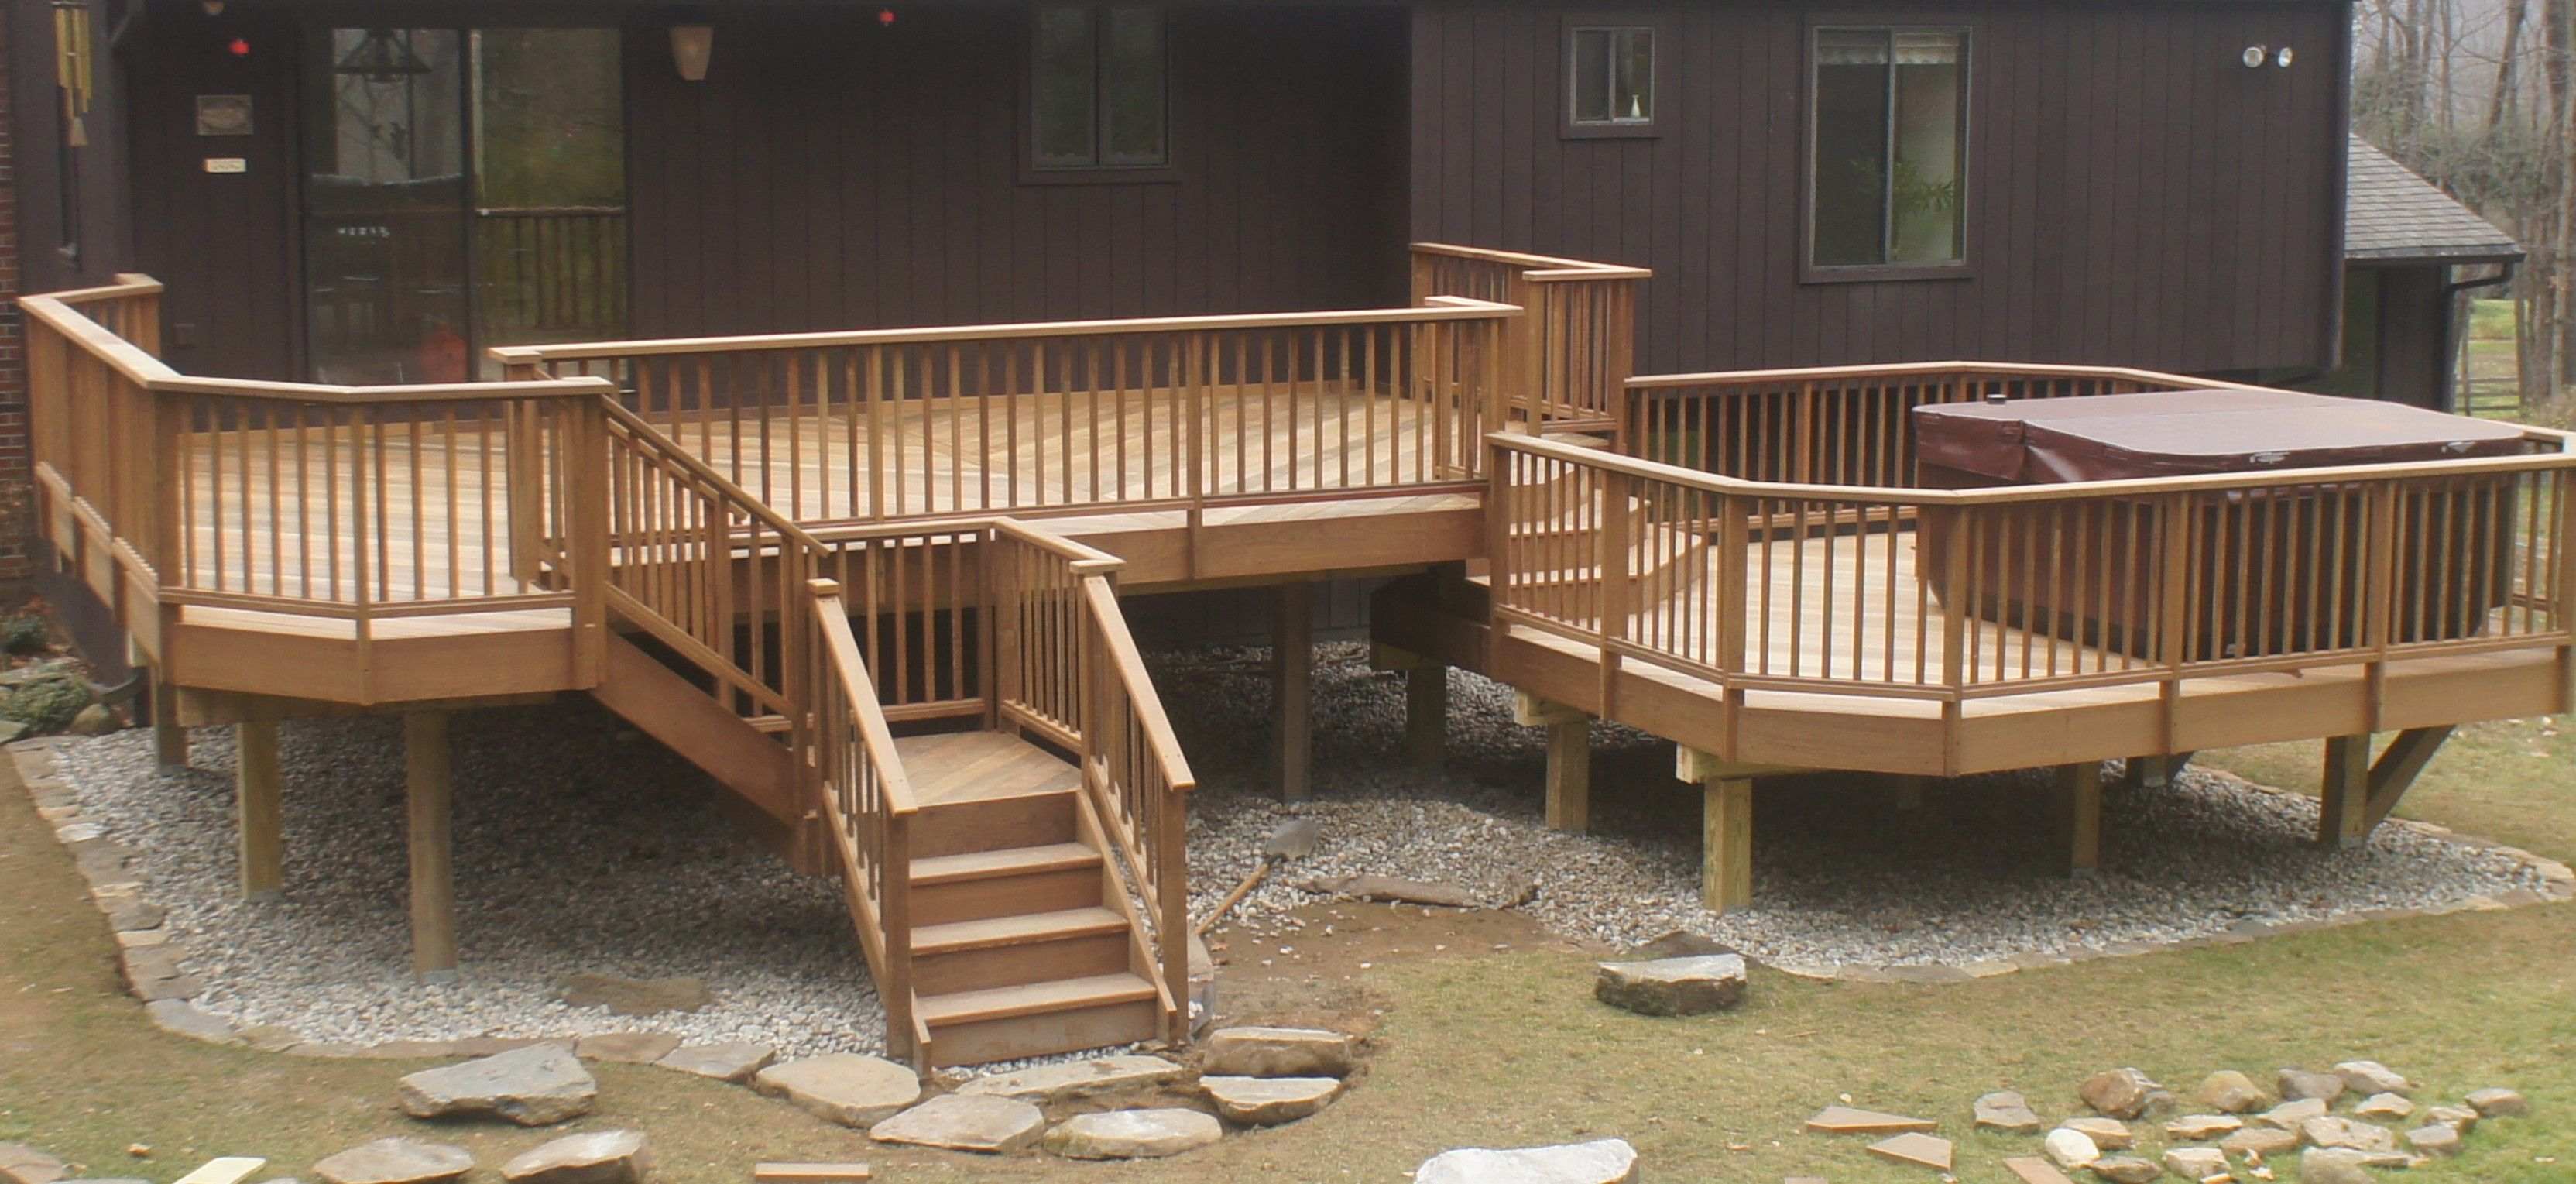 The Complete Guide About Multi Level Decks With 27 Design Ideas Hot Tub Landscaping Multi Level Deck Hot Tub Deck